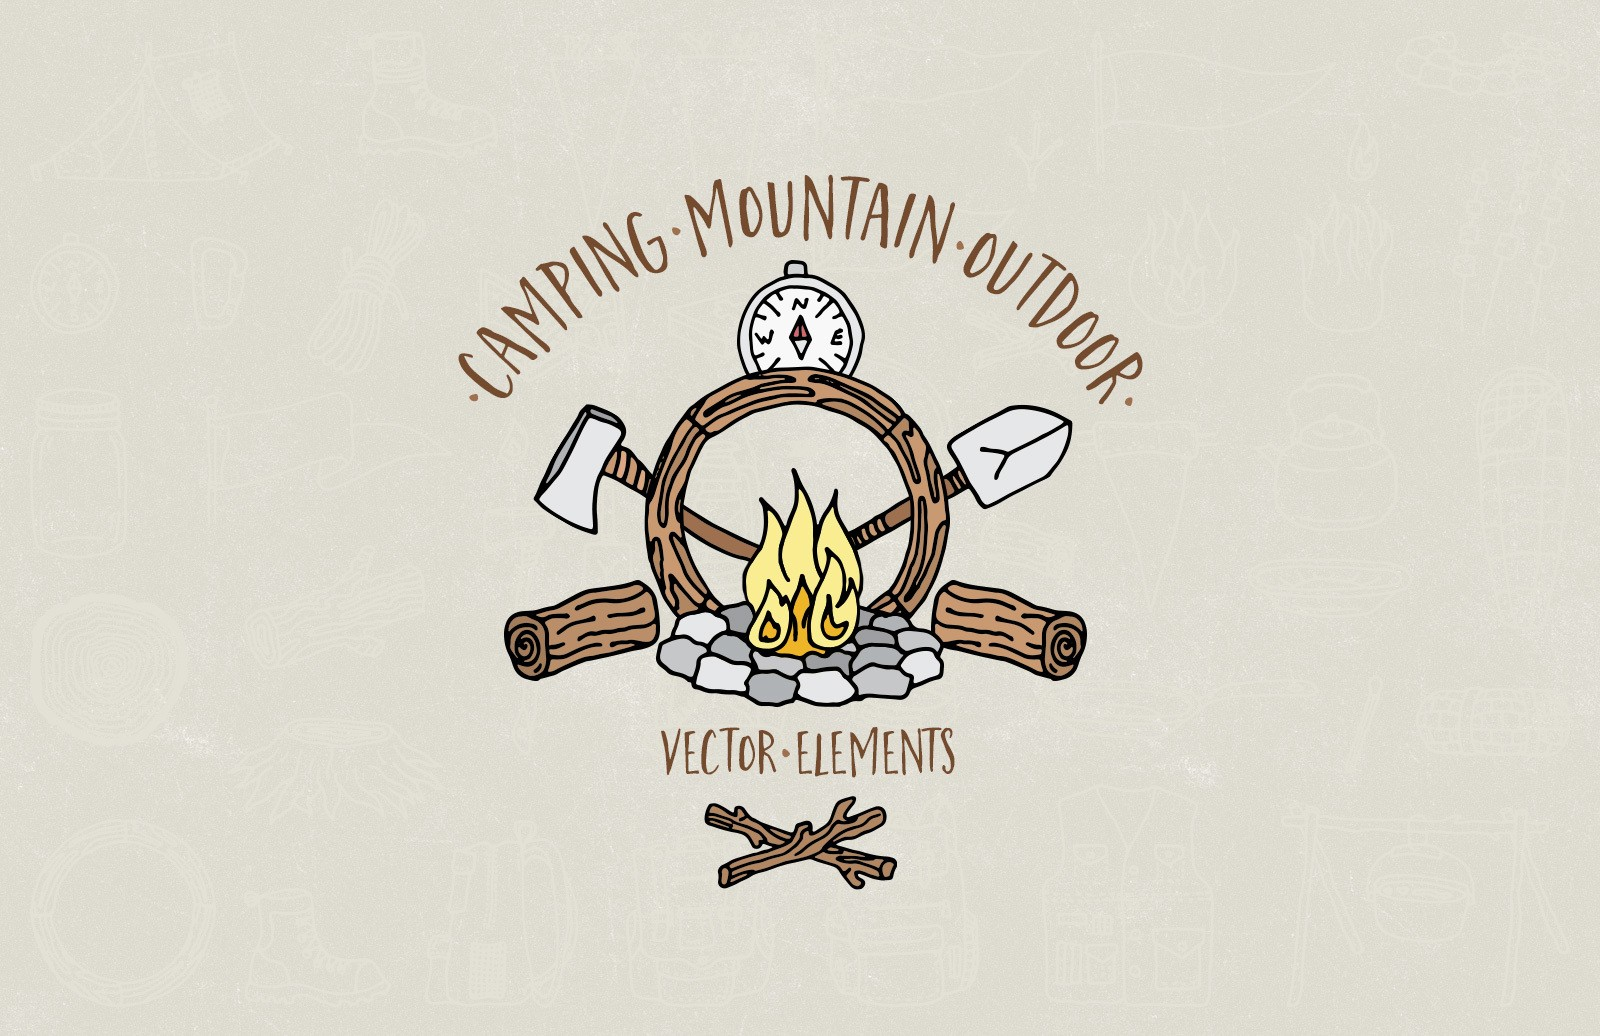 Camping Mountain Outdoor Vectors